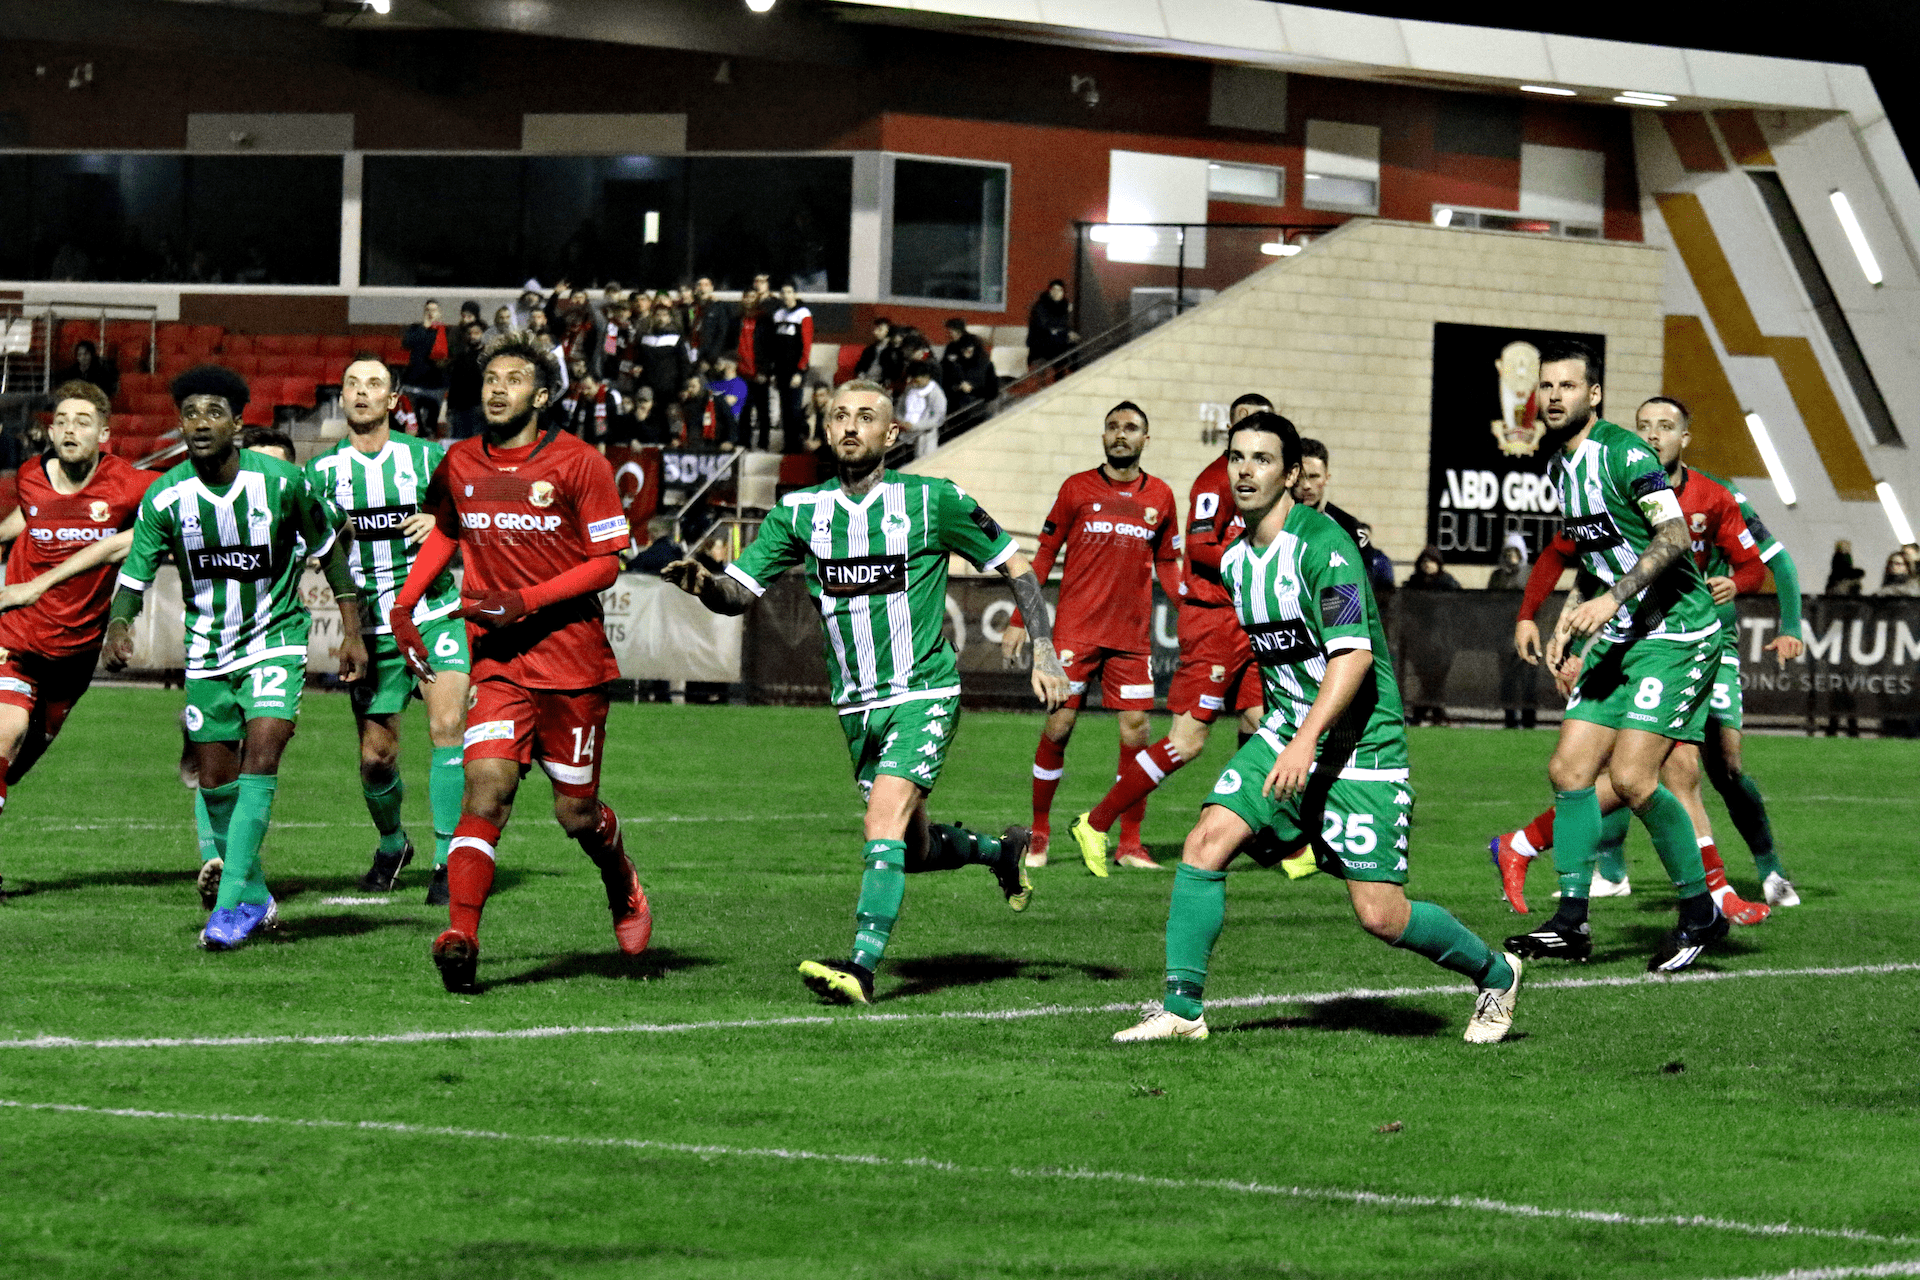 NPL Round 24 Review: Hume City suffer 3-1 defeat to Green Gully despite numerous goalscoring opportunities